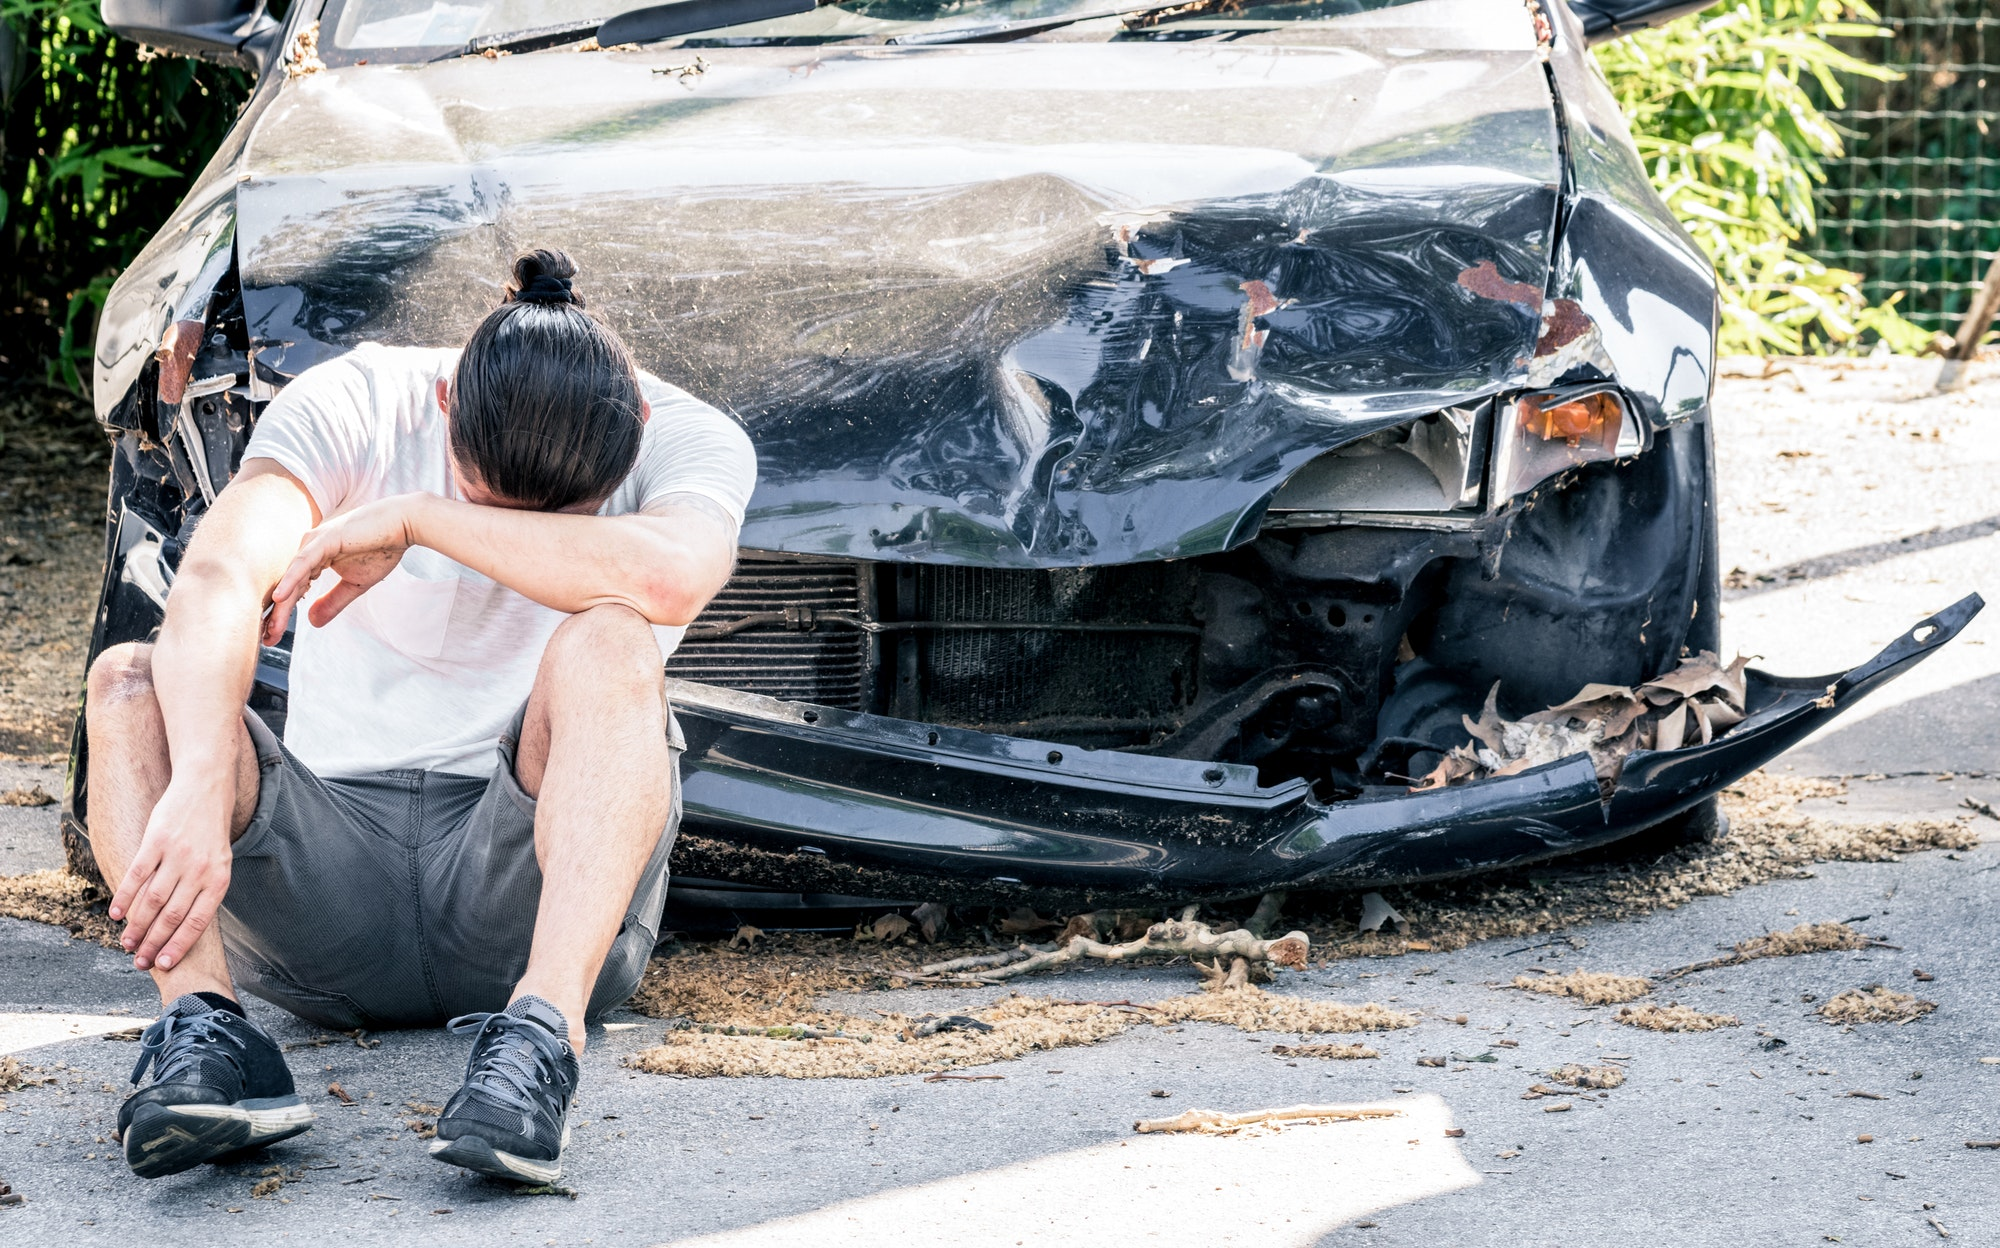 Man crying on his old damaged car after crash accident